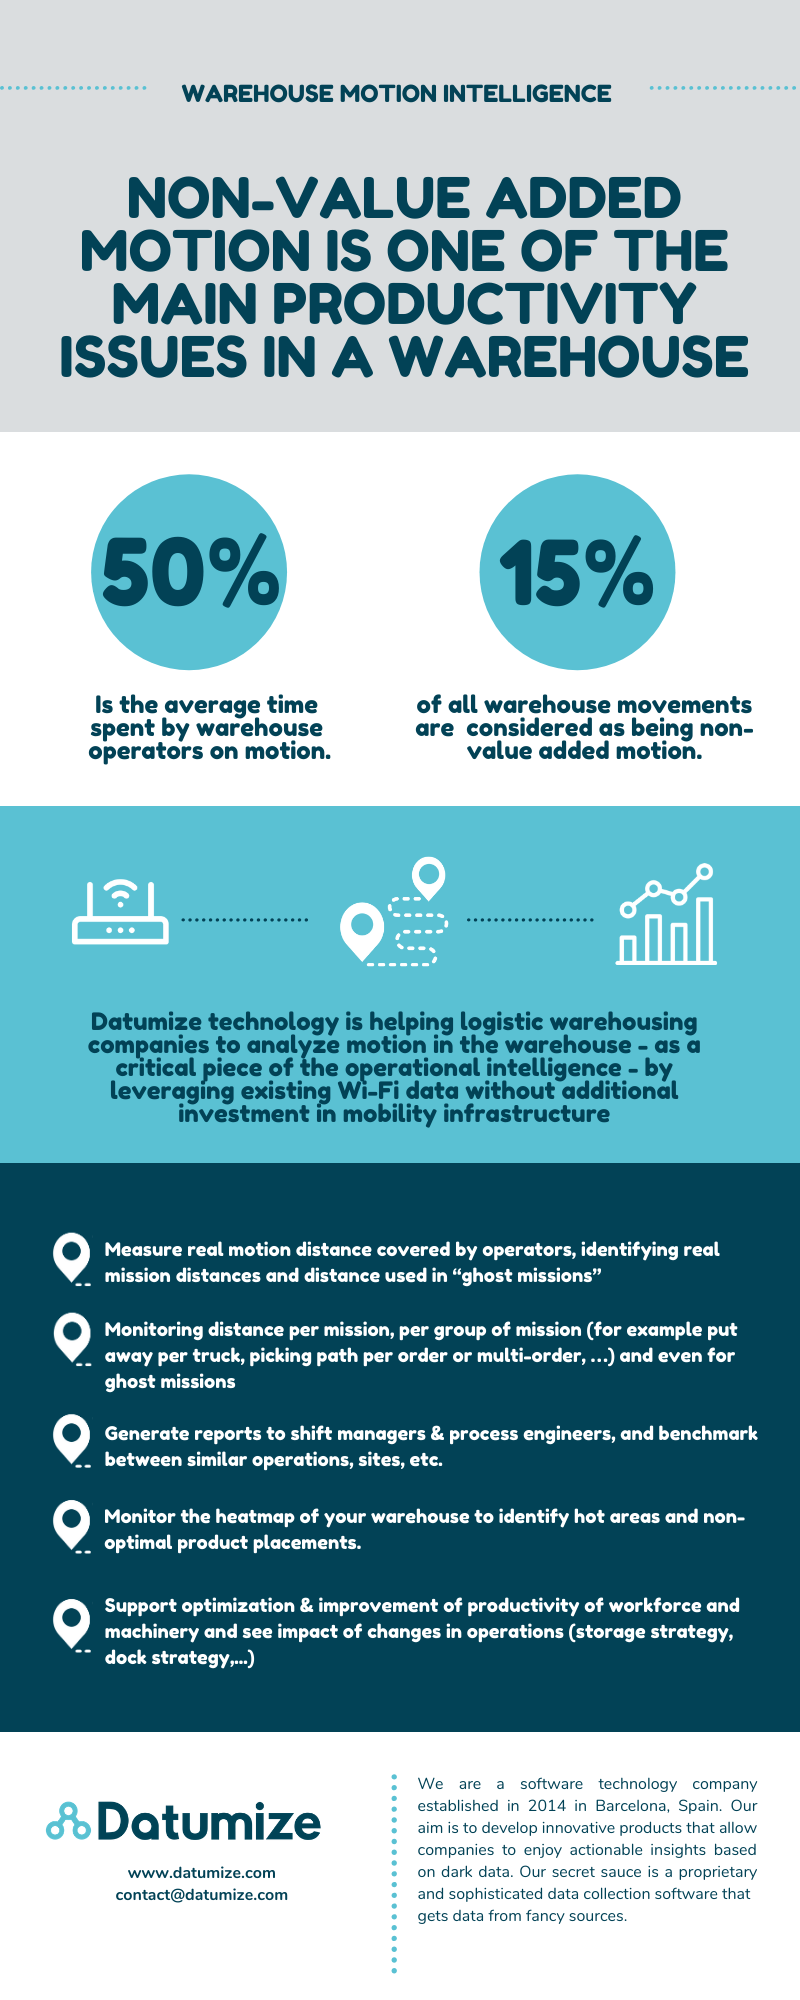 MOTION INTELLIGENCE FOR WAREHOUSES INFOGRAPHIC